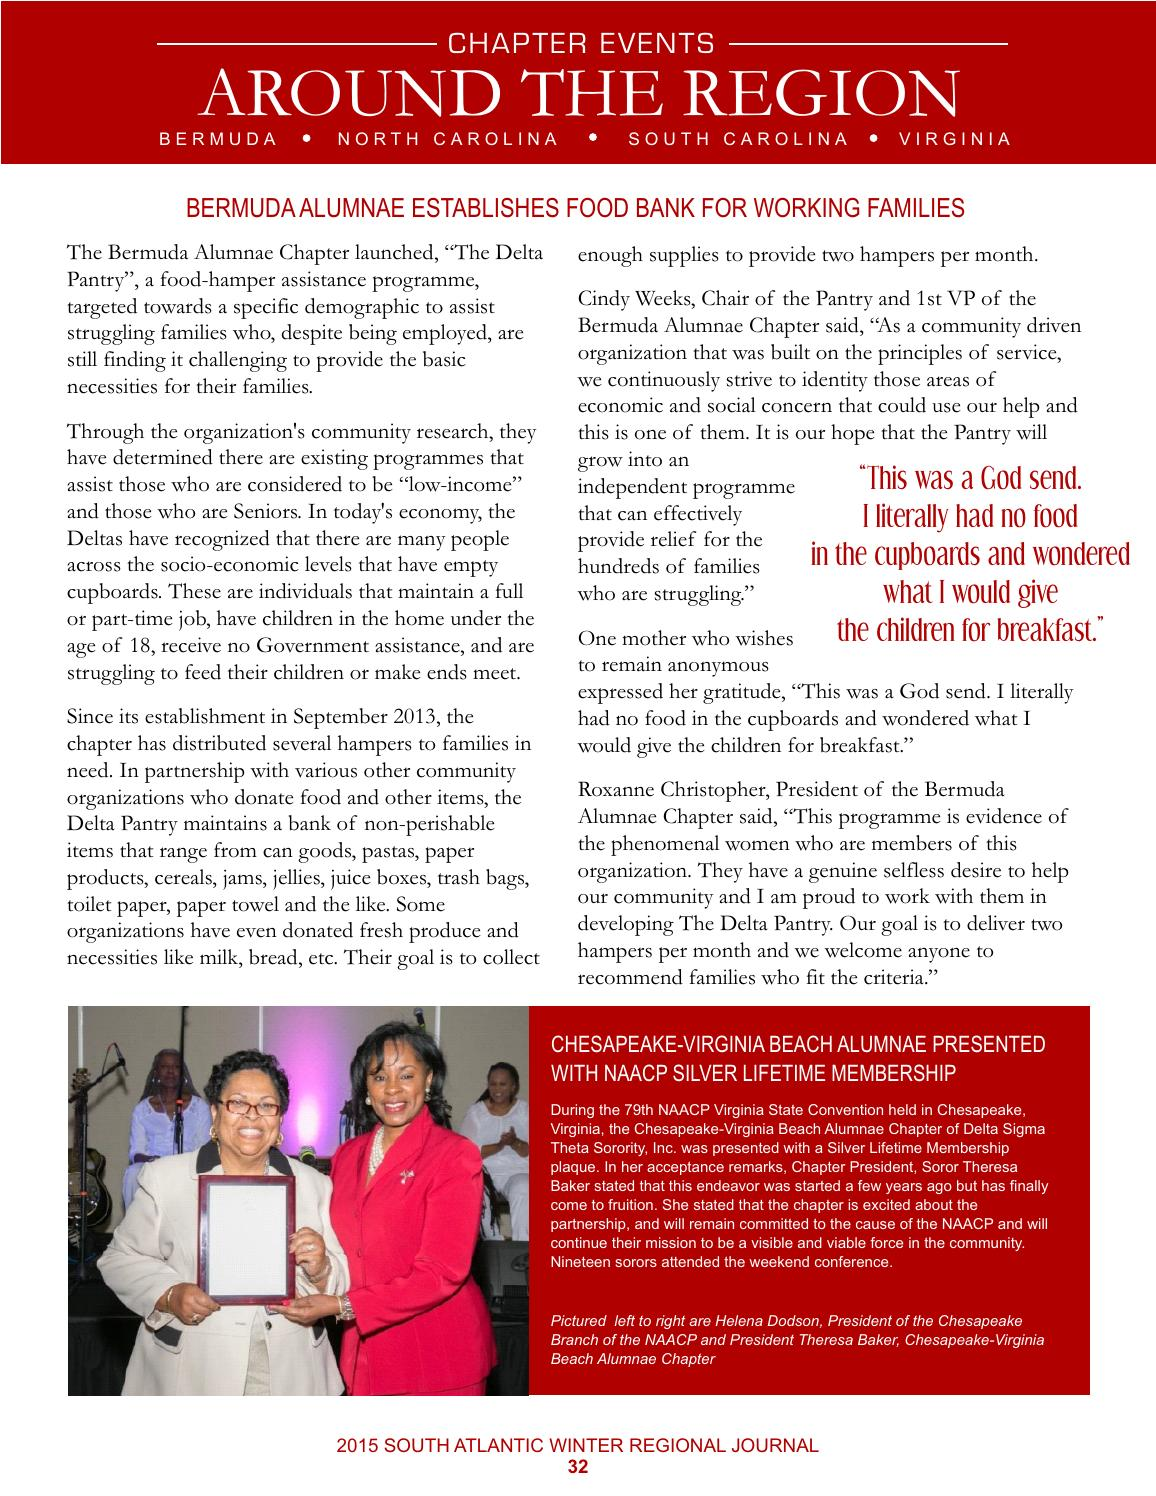 DST South Atlantic Regional Journal - Winter 2015 by DST South